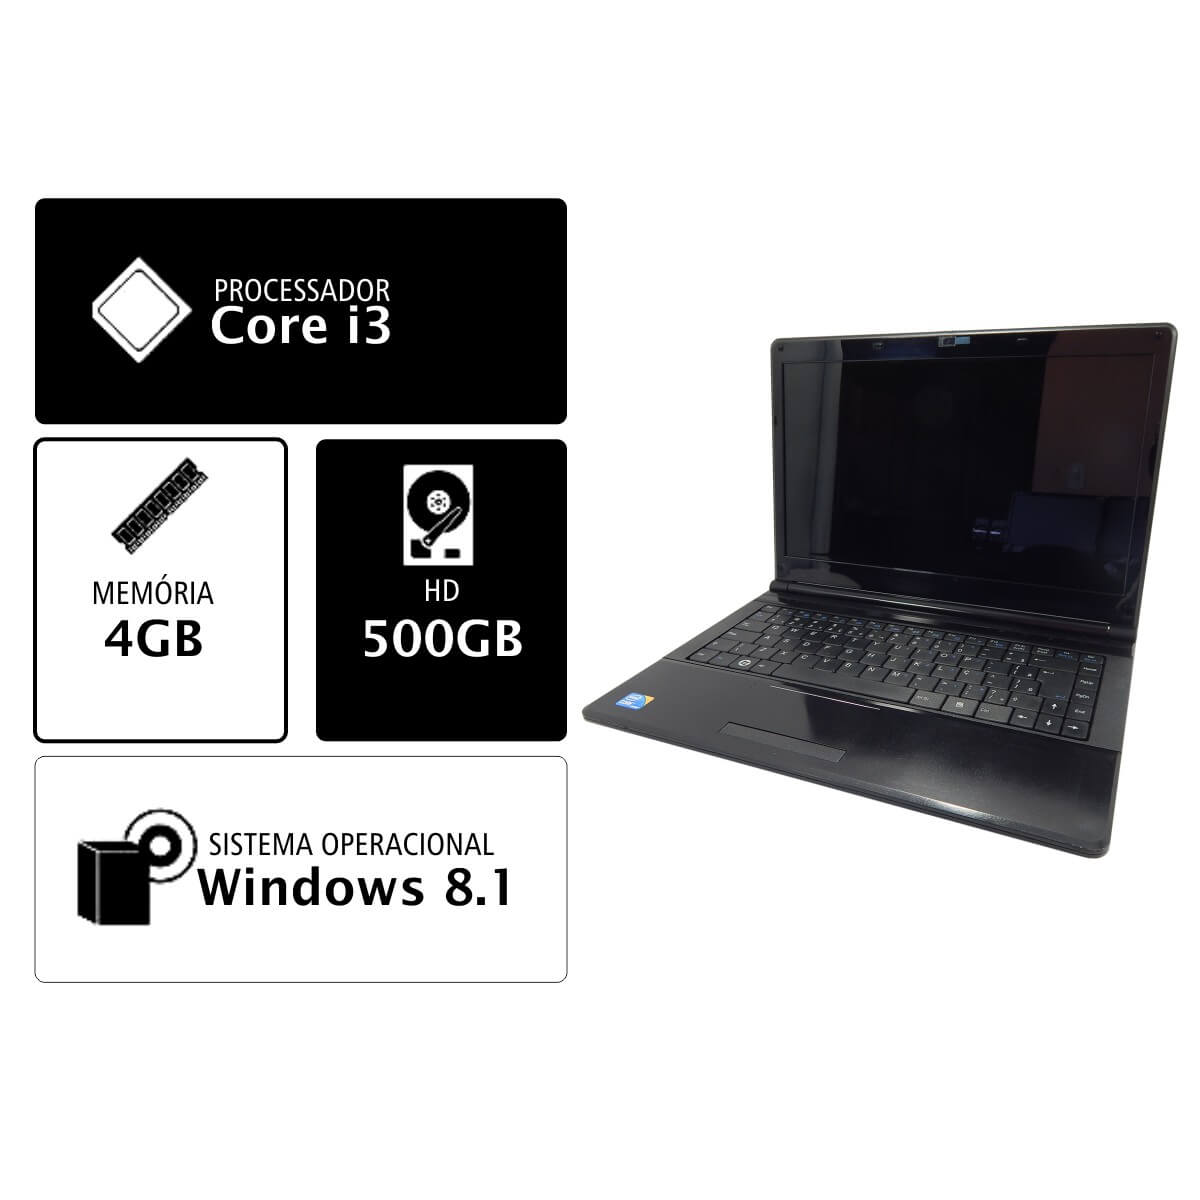 NOTEBOOK POSITIVO SIM 6280 I3-350M 4Gb 500Gb DVD - Seminovo